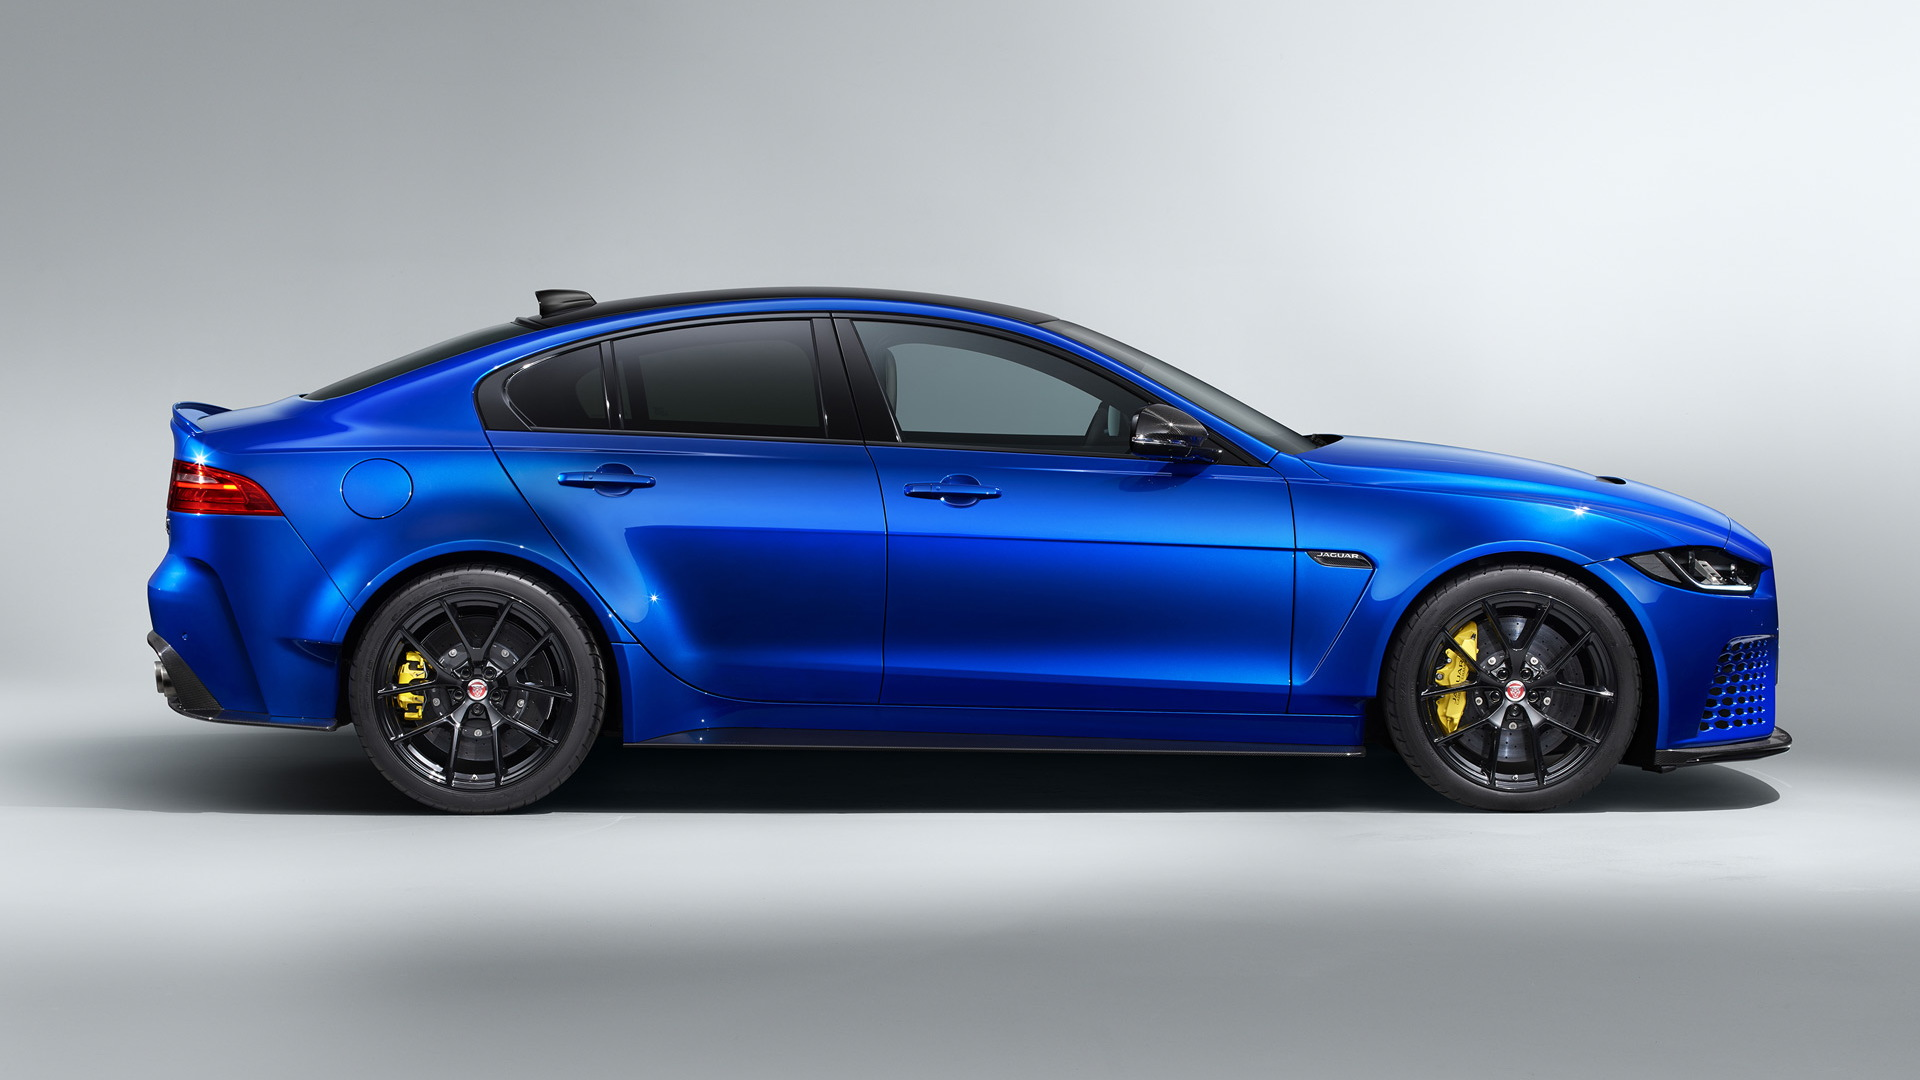 2020 Jaguar XE SV Project 8 Touring